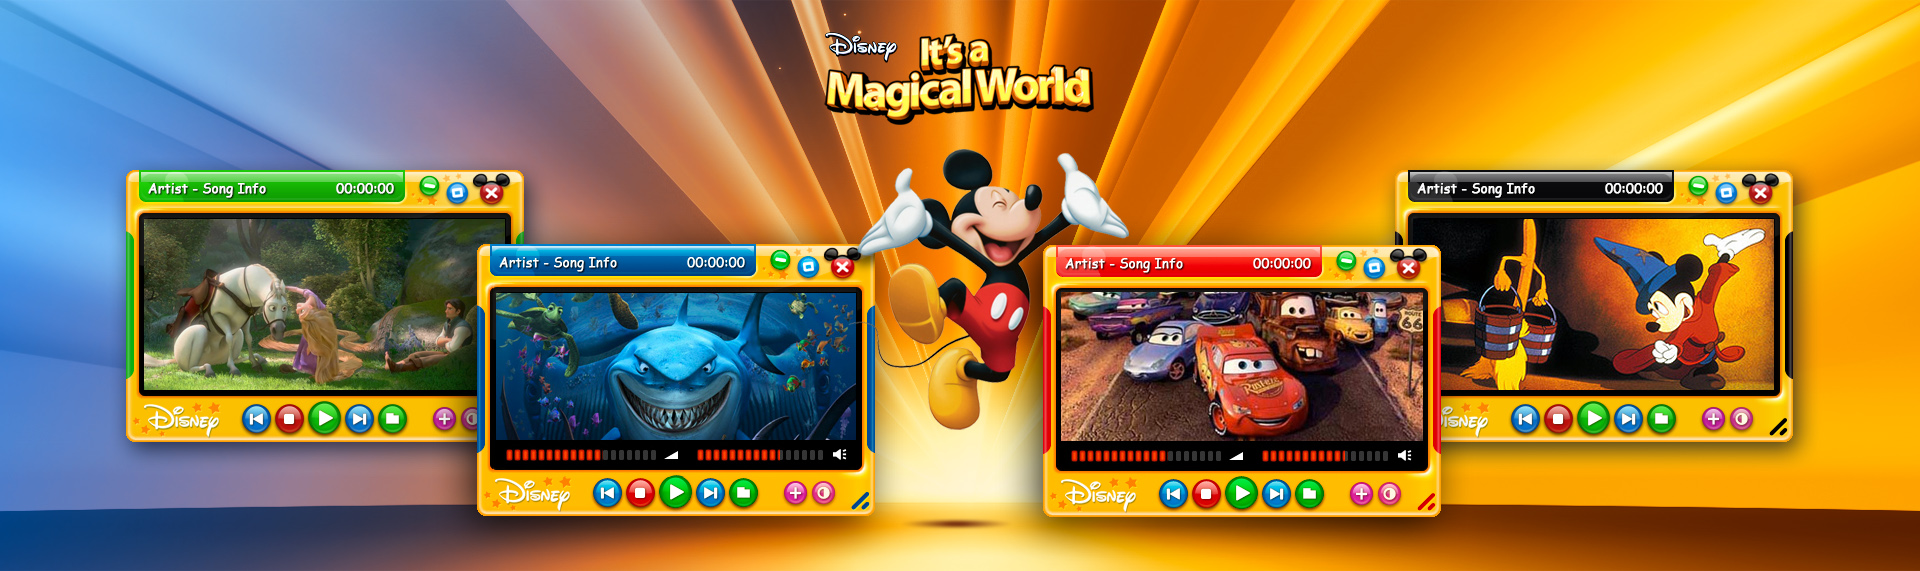 Disney;s It's a Magical World  Client: The Walt Disney Company  The official Disney six color, magical Windows Media Player. Part of the Hyperdesk Windows desktop theme - Disneys It's a Magical World. Our design team captured the magic of Disney, injecting fun, vibrant colors and enchanting graphics into the Windows Media Player skin that delighted children and parents worldwide. The complete Windows desktop theme was powered & designed by The Skins Factory. Unfortunately, this magical theme is no longer available.